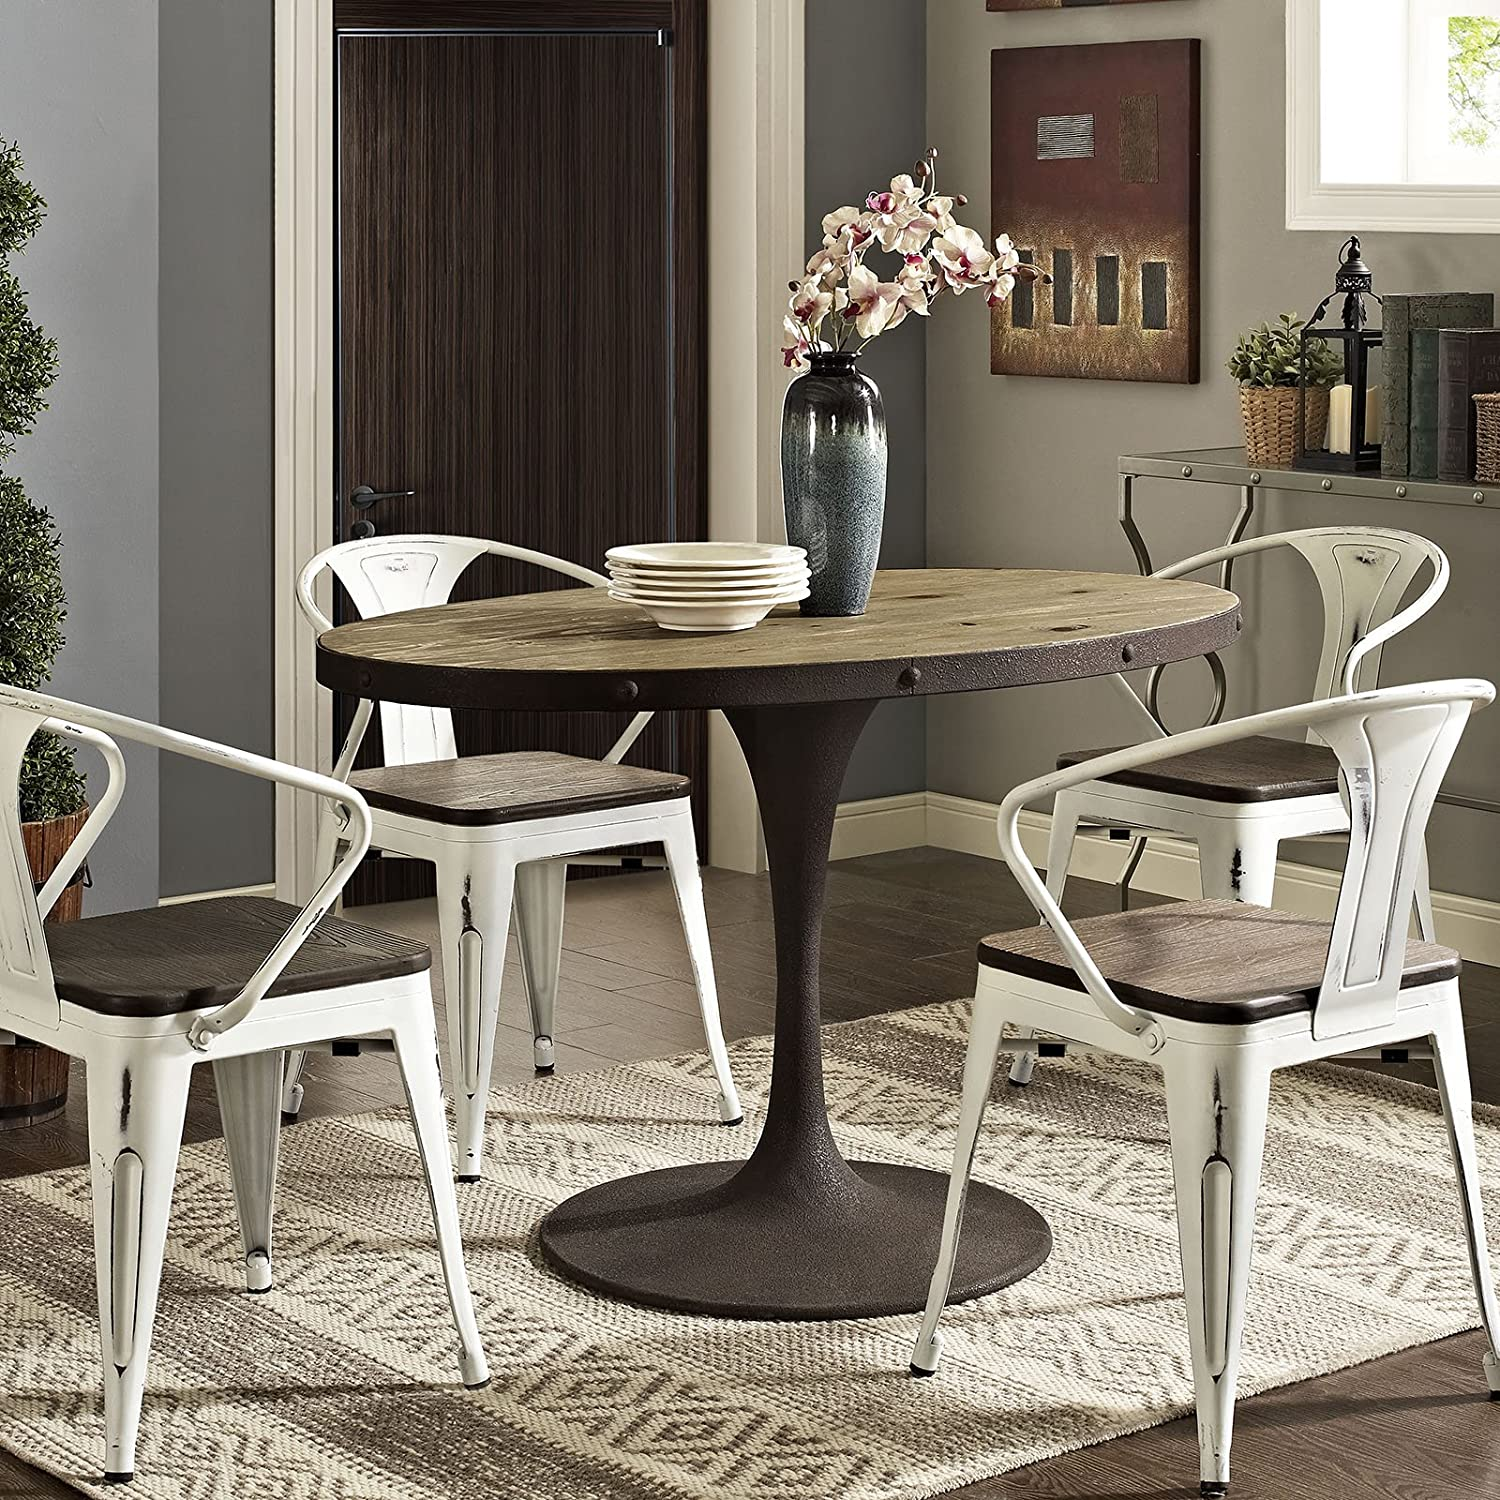 Amazon modway drive oval wood top dining table 47 brown amazon modway drive oval wood top dining table 47 brown kitchen dining workwithnaturefo